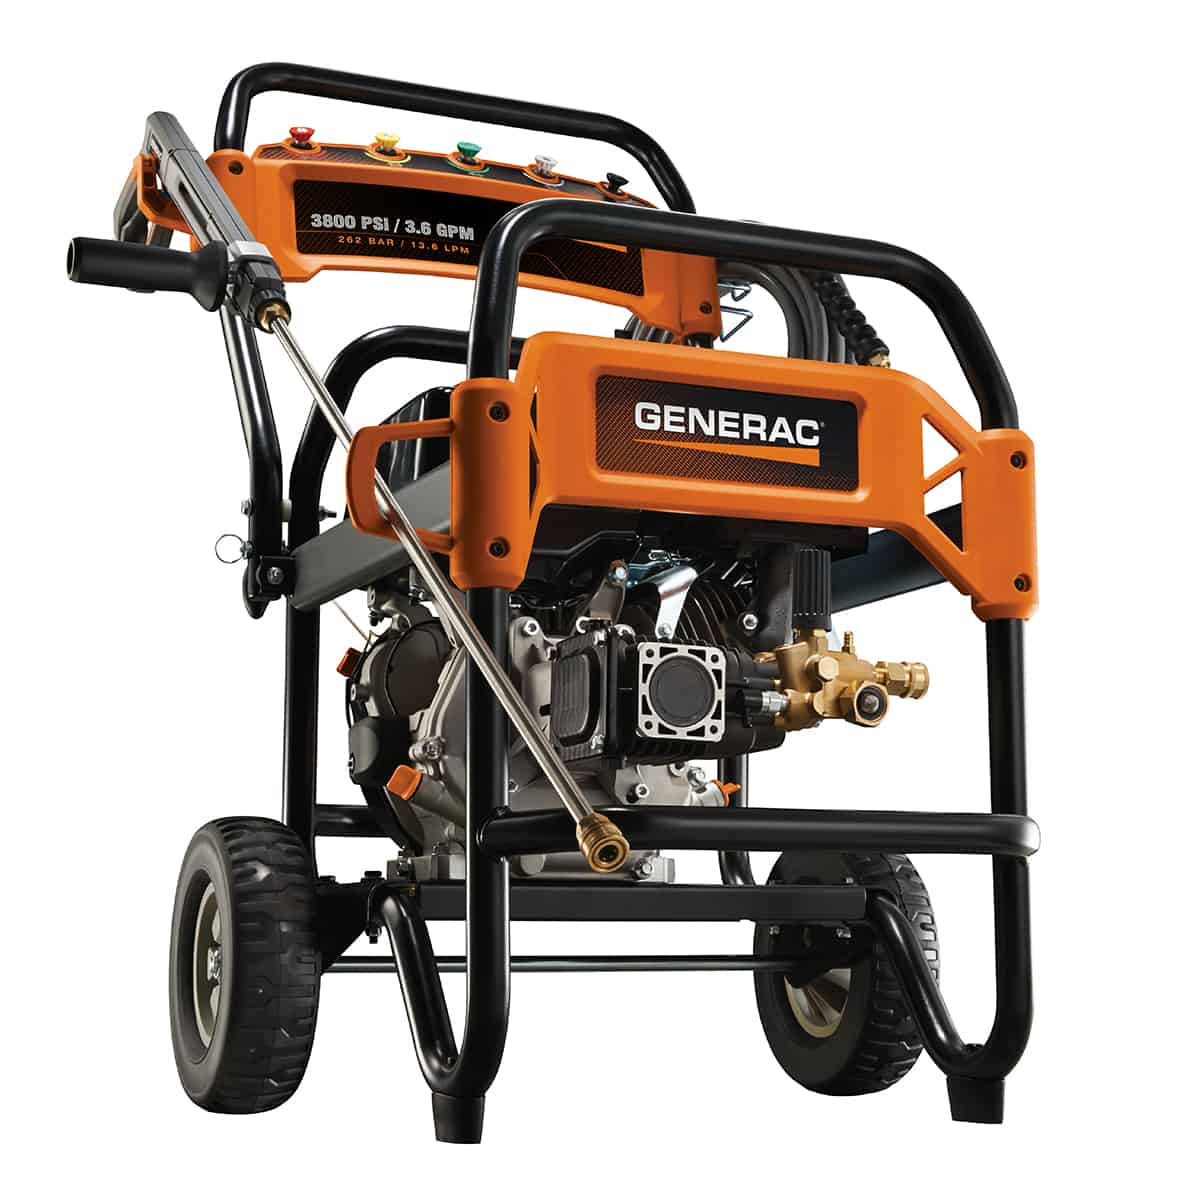 Generac 3800 PSI Commercial Power Washer 6564